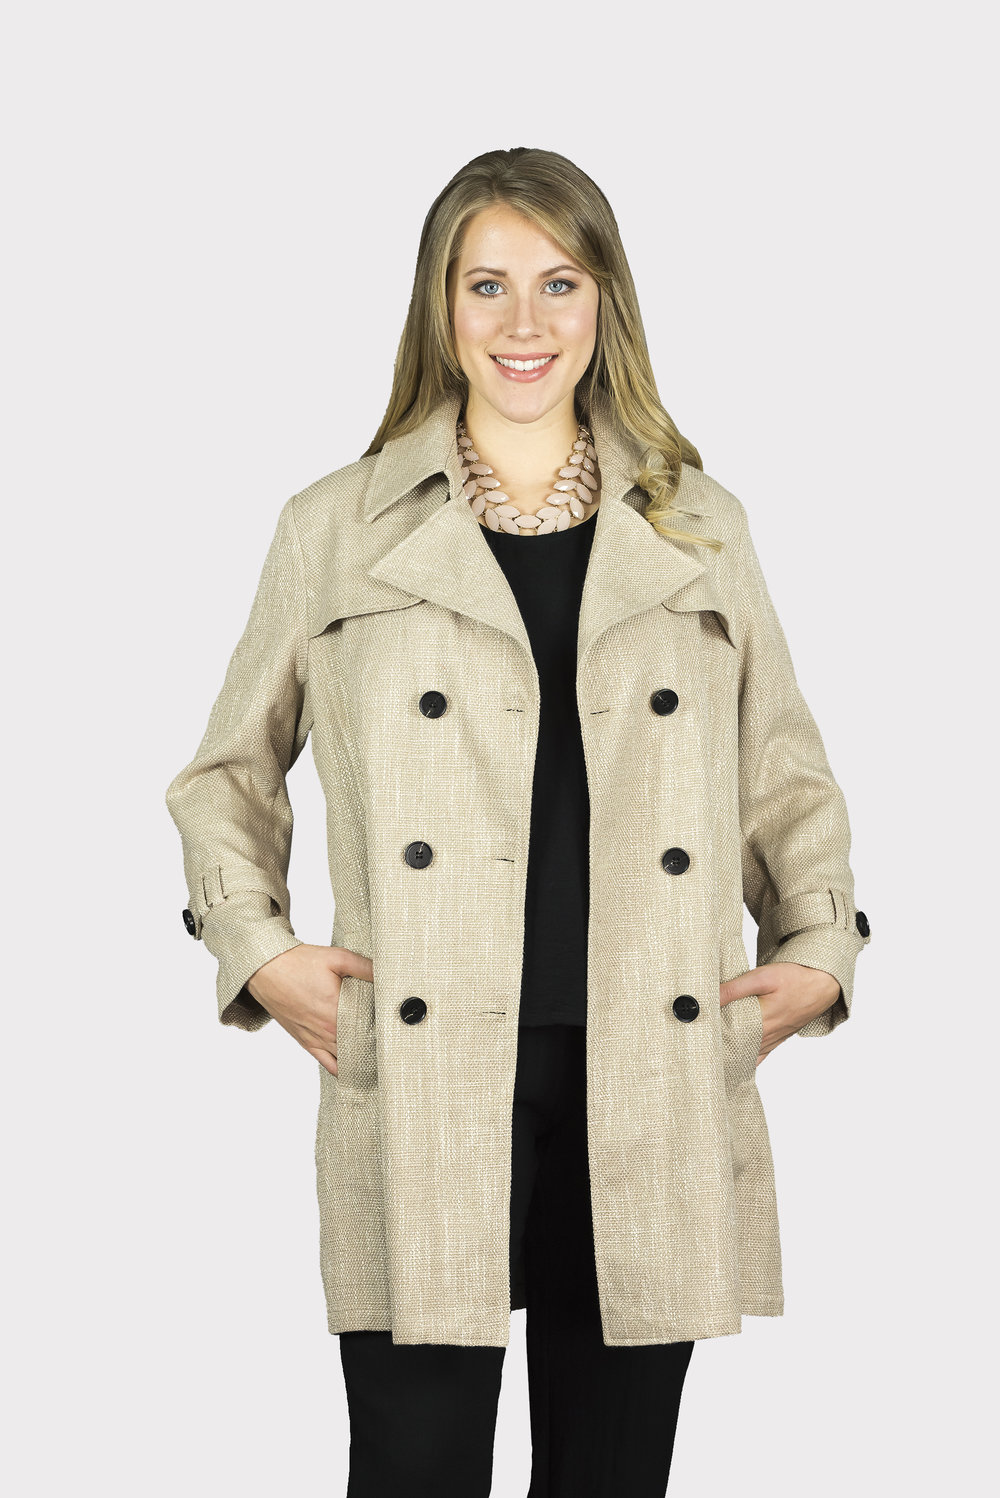 AA8003 - Carmen Jacket SG12 - Wheat